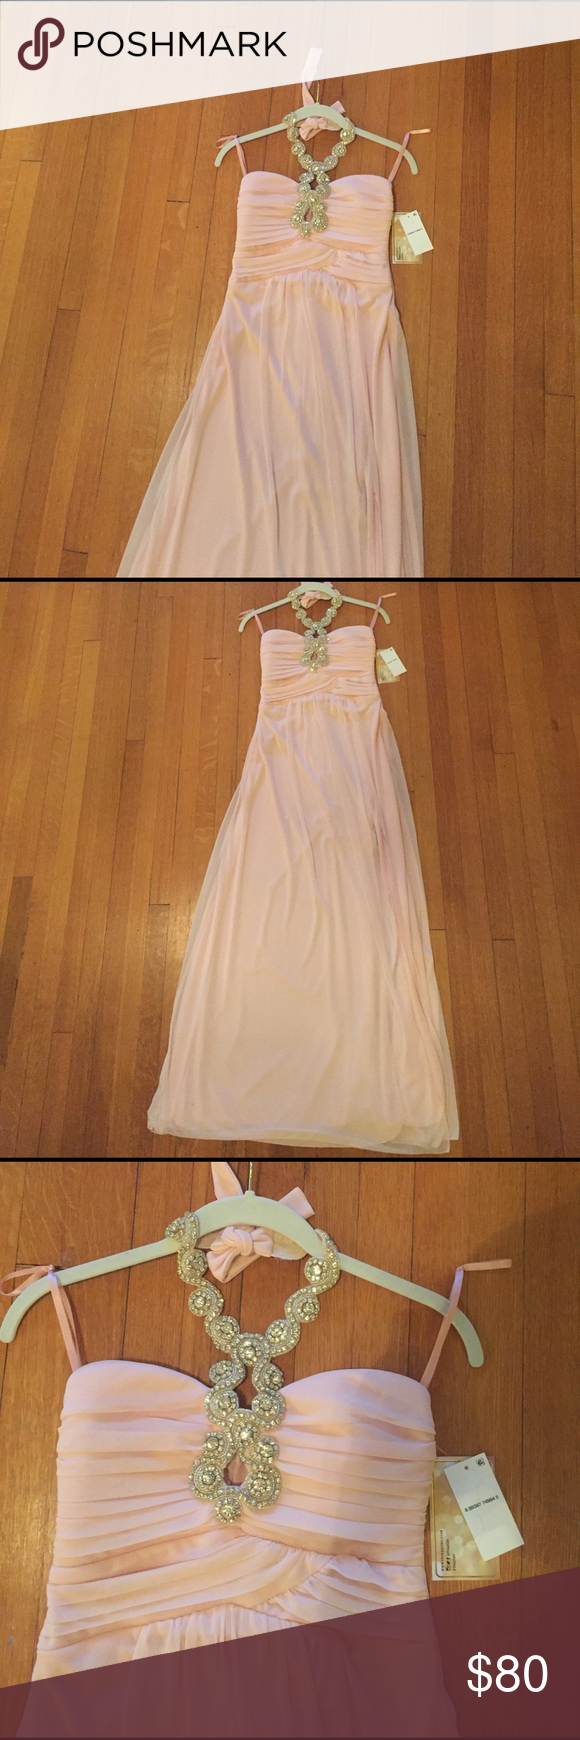 Light pink halter neck prom dress nwt halter neck blush pink and